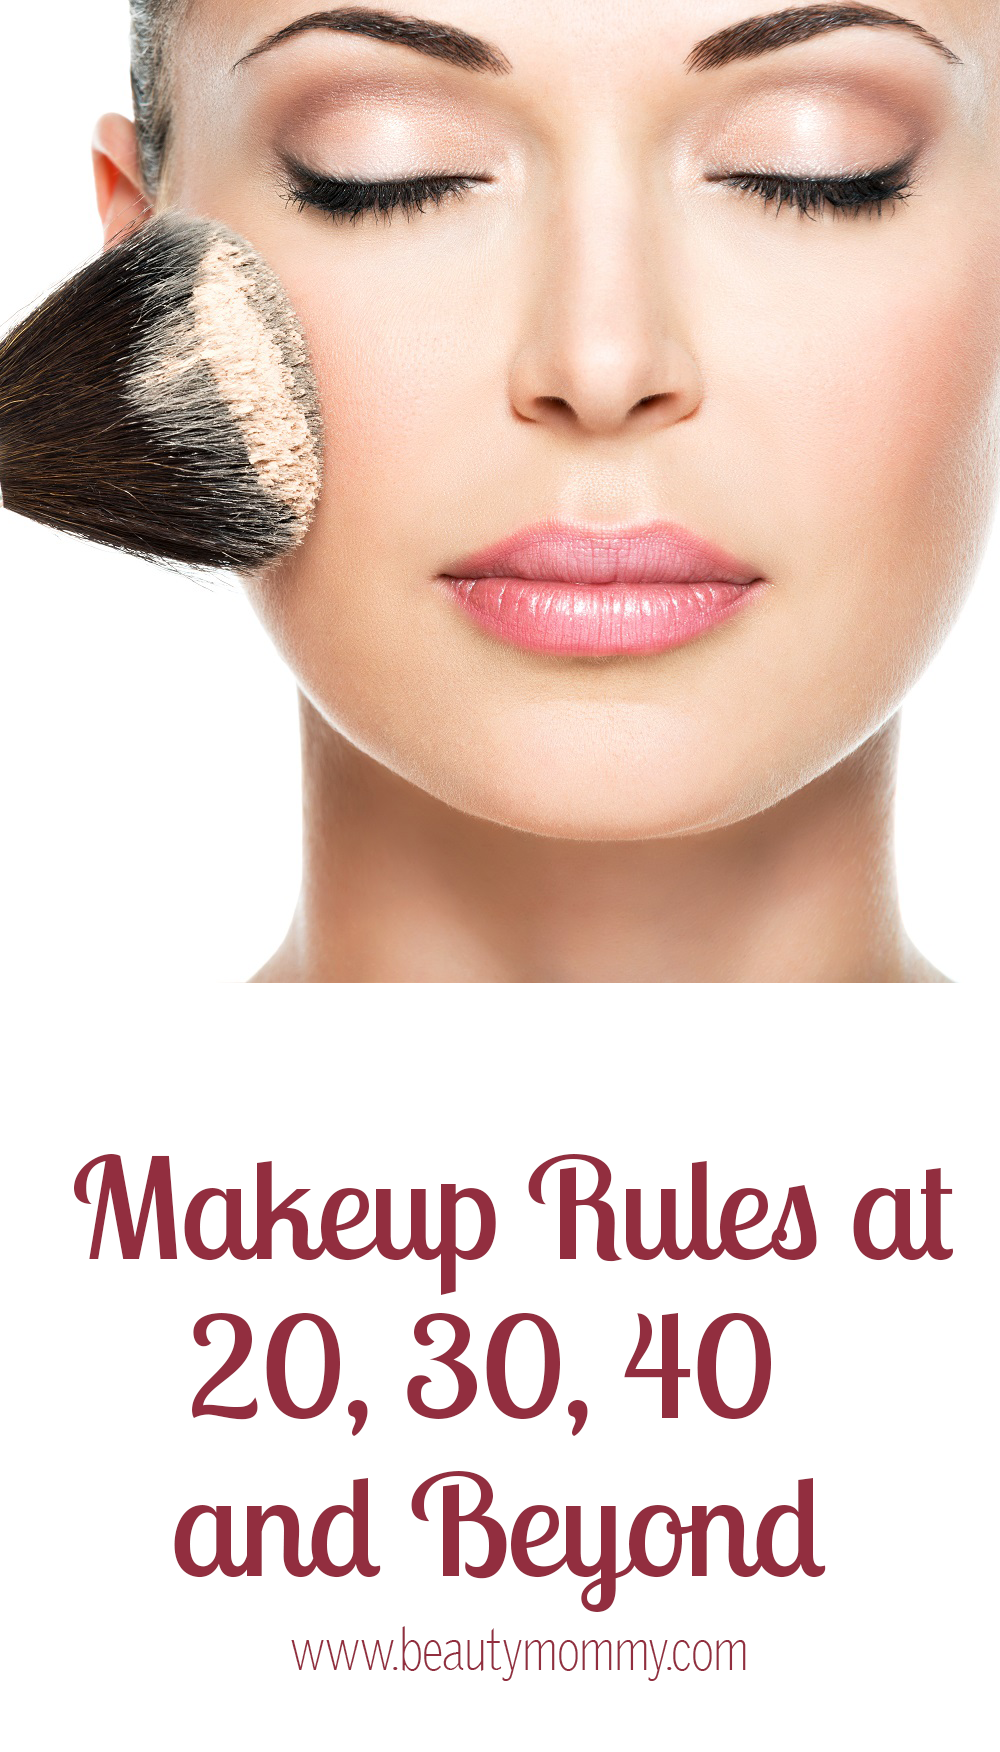 Makeup Rules at 20, 30, 40 and Beyond How to wear makeup